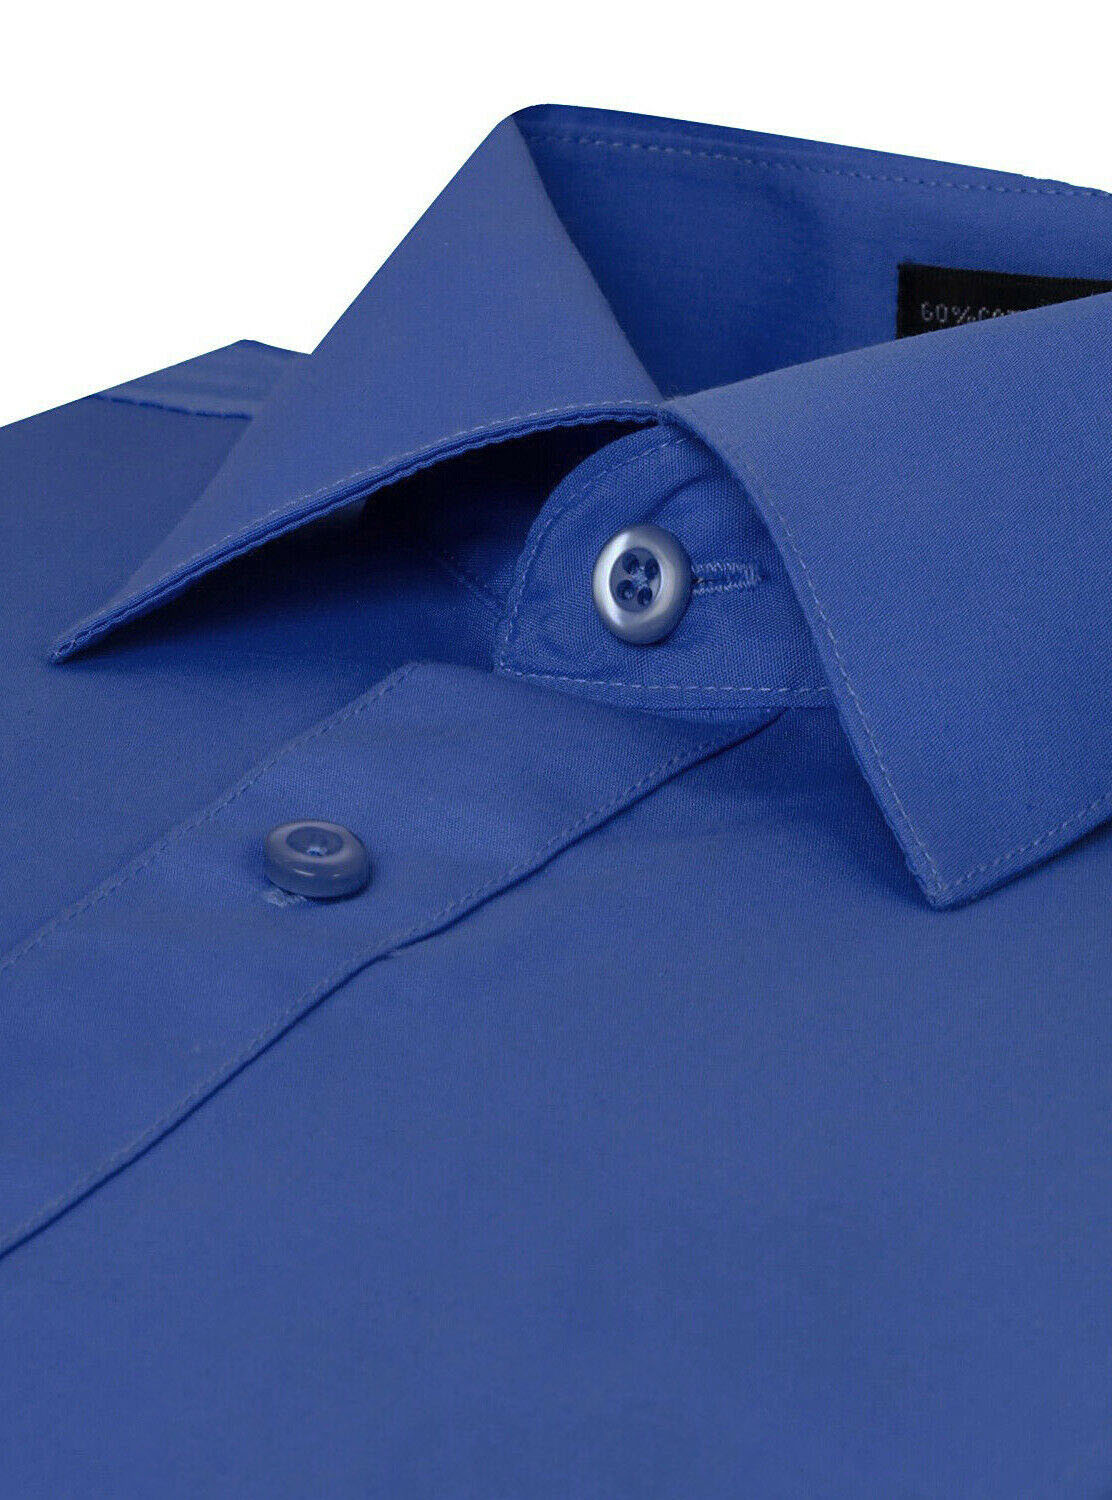 Omega-Italy-Men-039-s-Premium-Slim-Fit-Button-Up-Long-Sleeve-Solid-Color-Dress-Shirt thumbnail 60